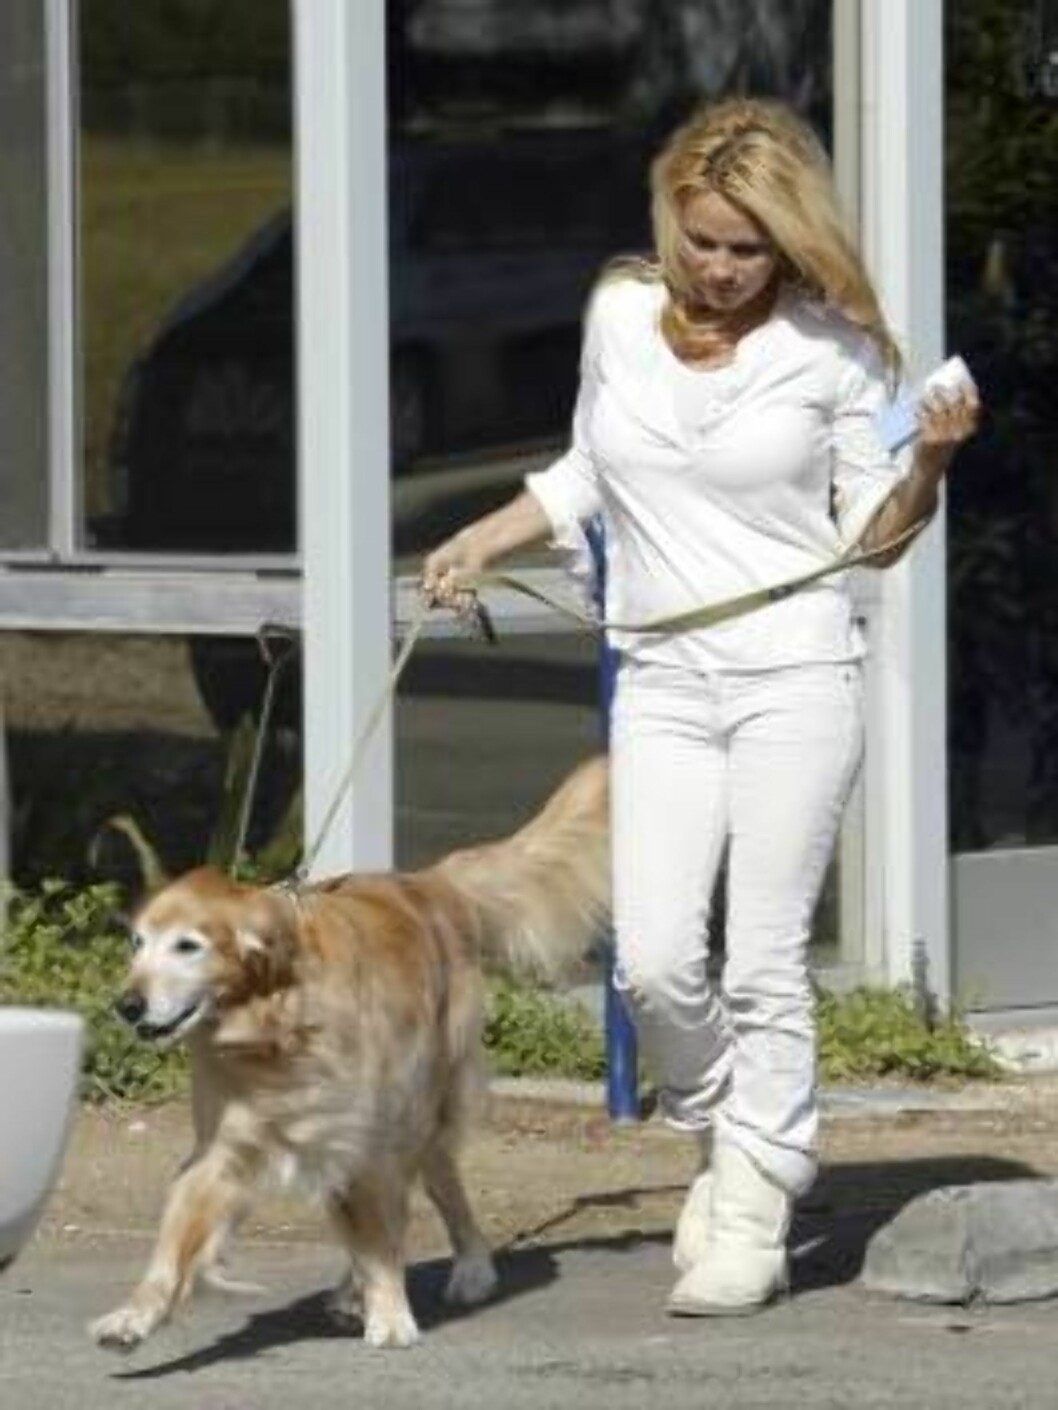 Pamela Anderson takes her lab to the vet in Malibu. March 9, 2006 X17agency EXCLUSIVE Foto: All Over Press